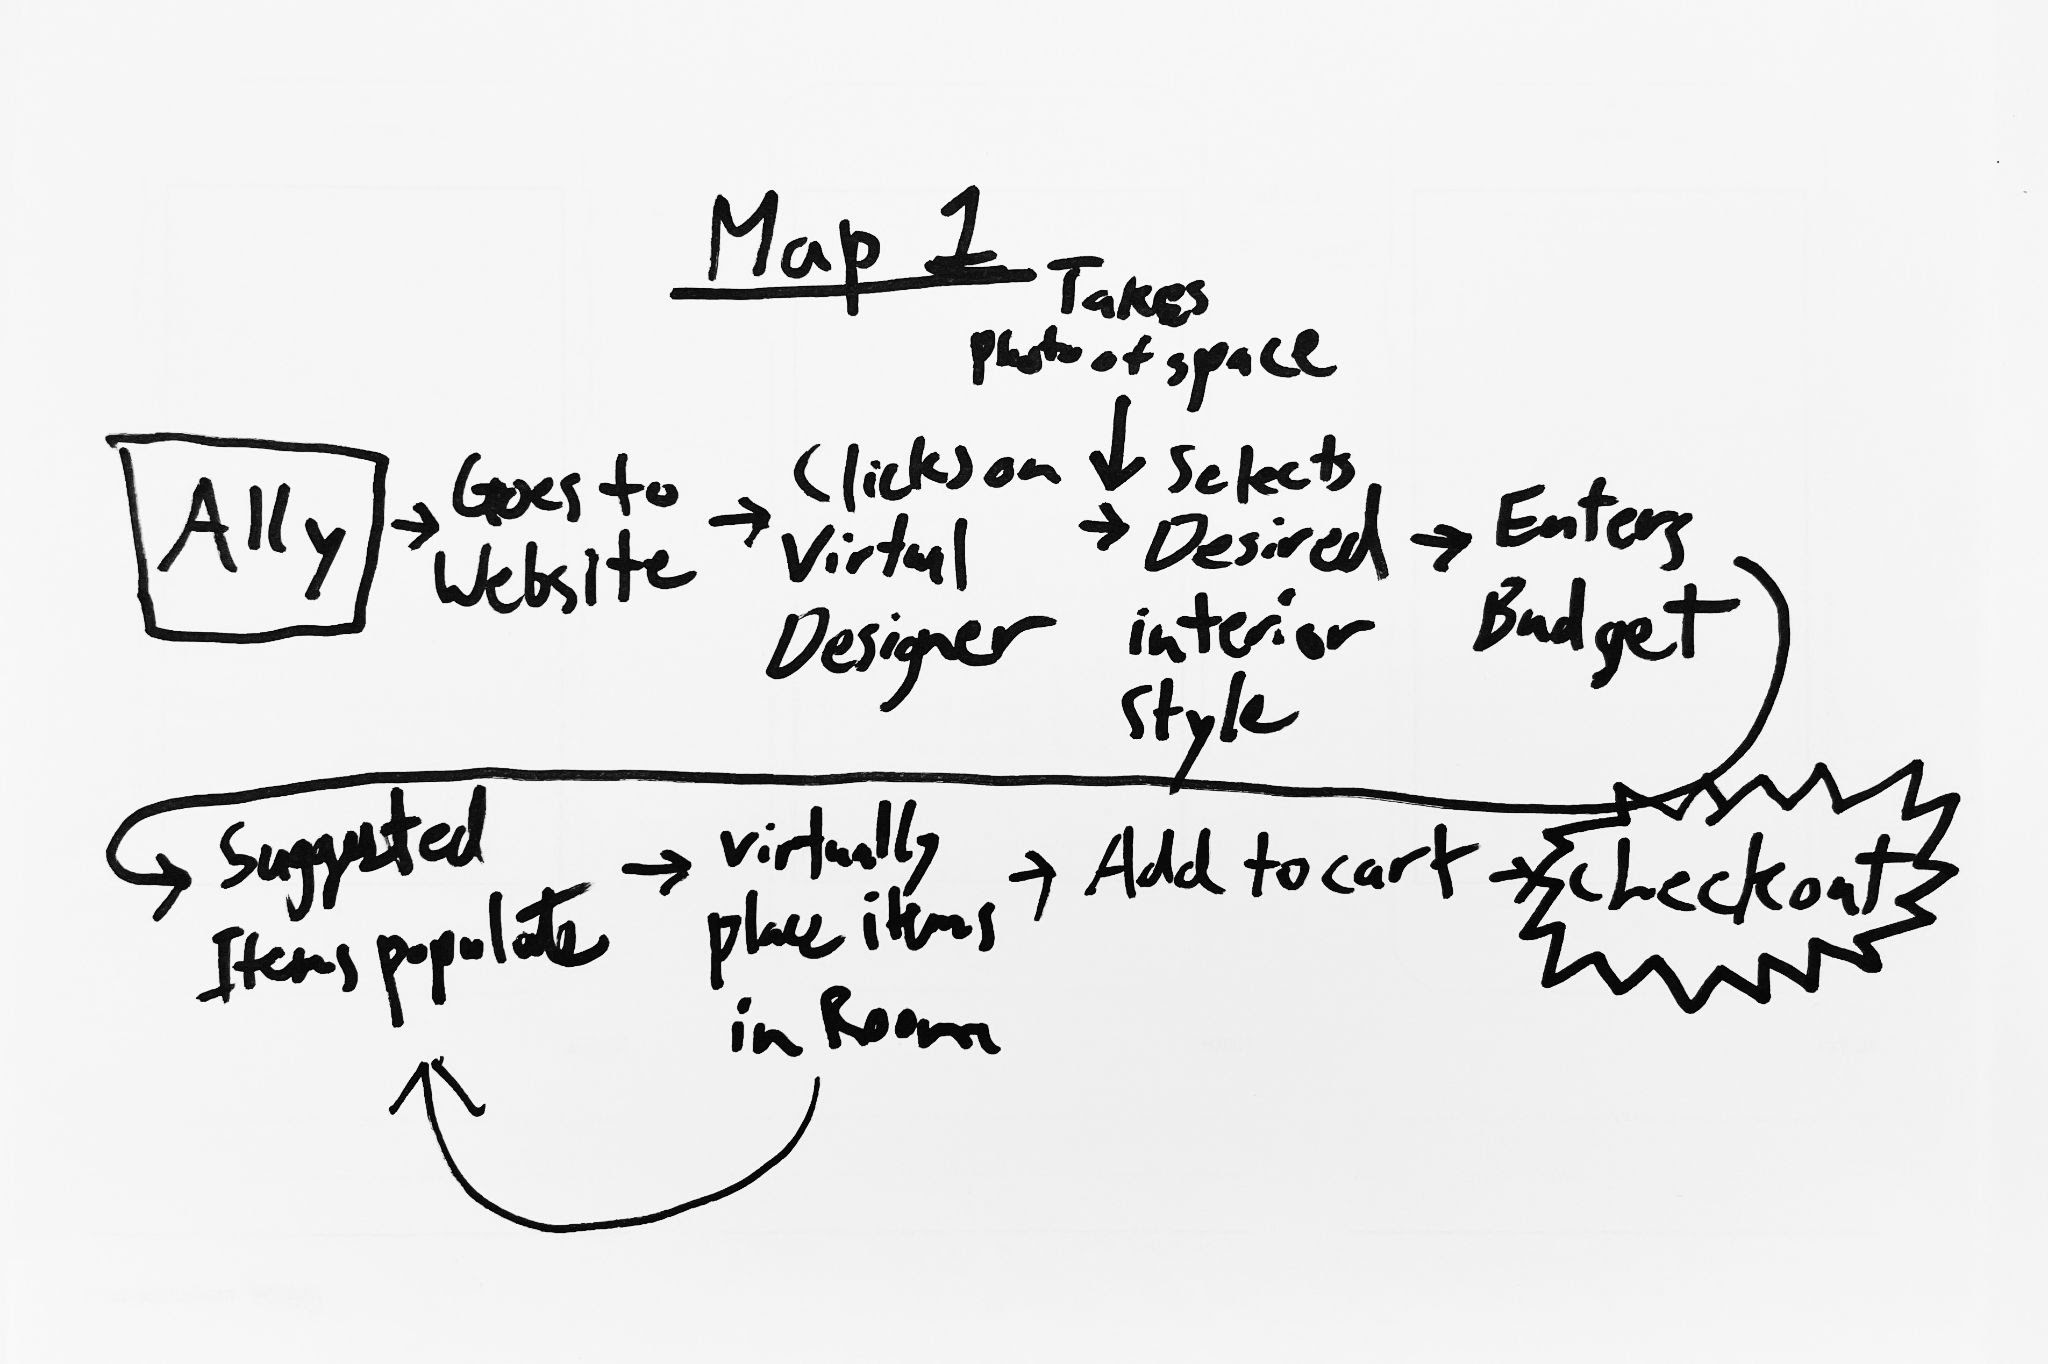 sketched map of the user flow